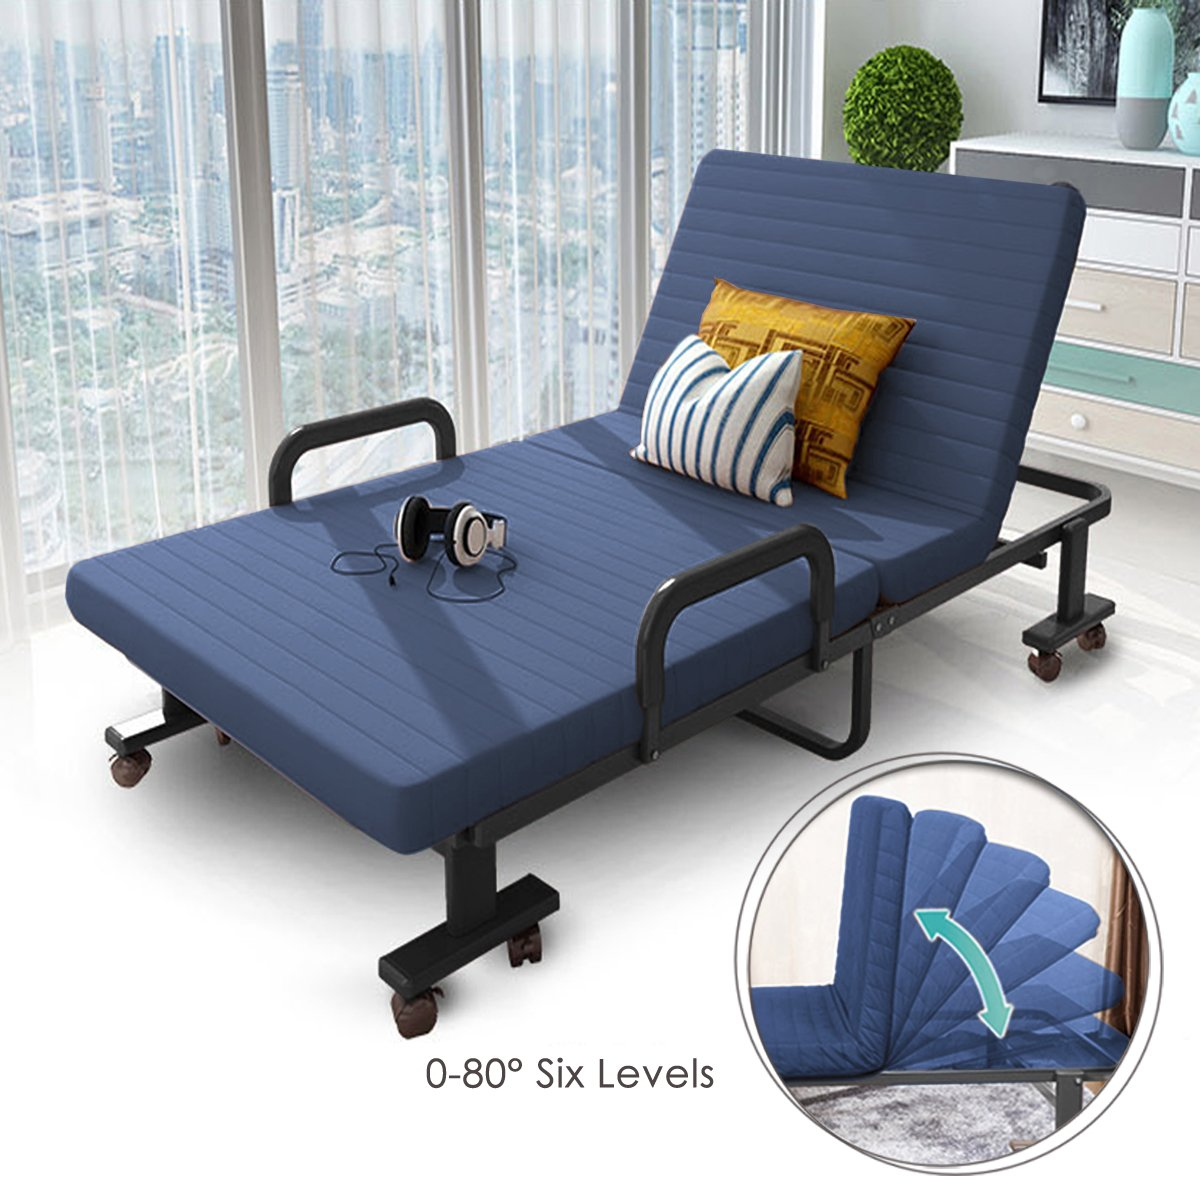 H&A 75''x 32'' Folding Rollaway Bed Adjustable Guest Bed Chaise Lounge Chairs with Reversible Mattress and Pillow (Navy Blue)